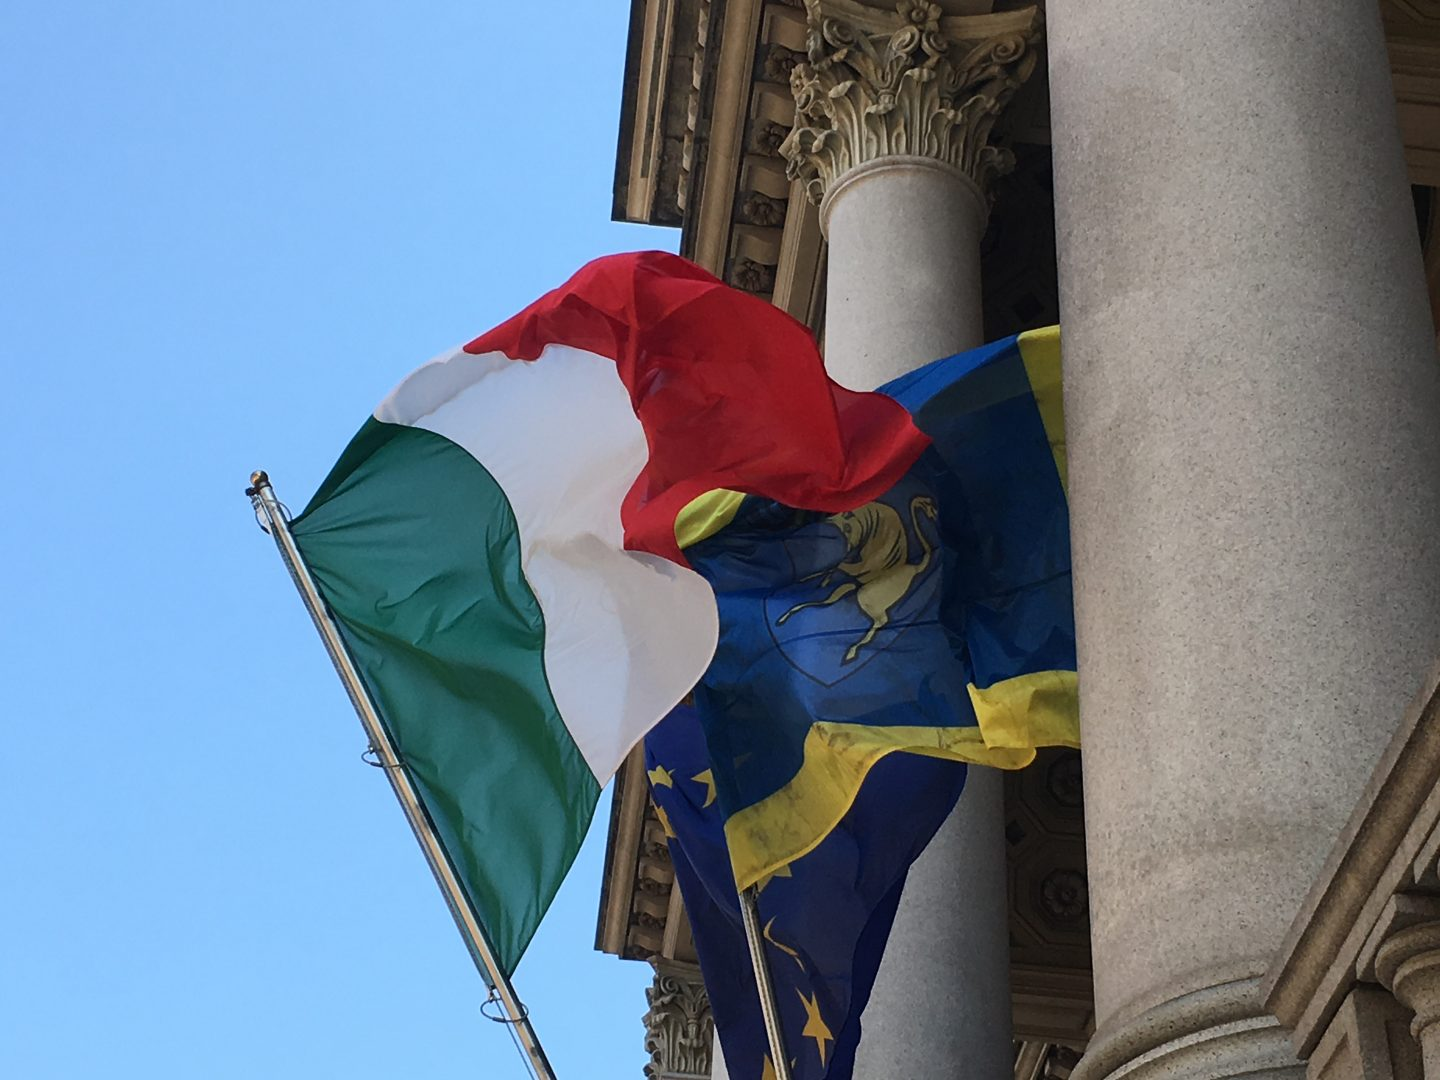 Flags of Turin and Italy on the side of Mole Antonelliana in Turin